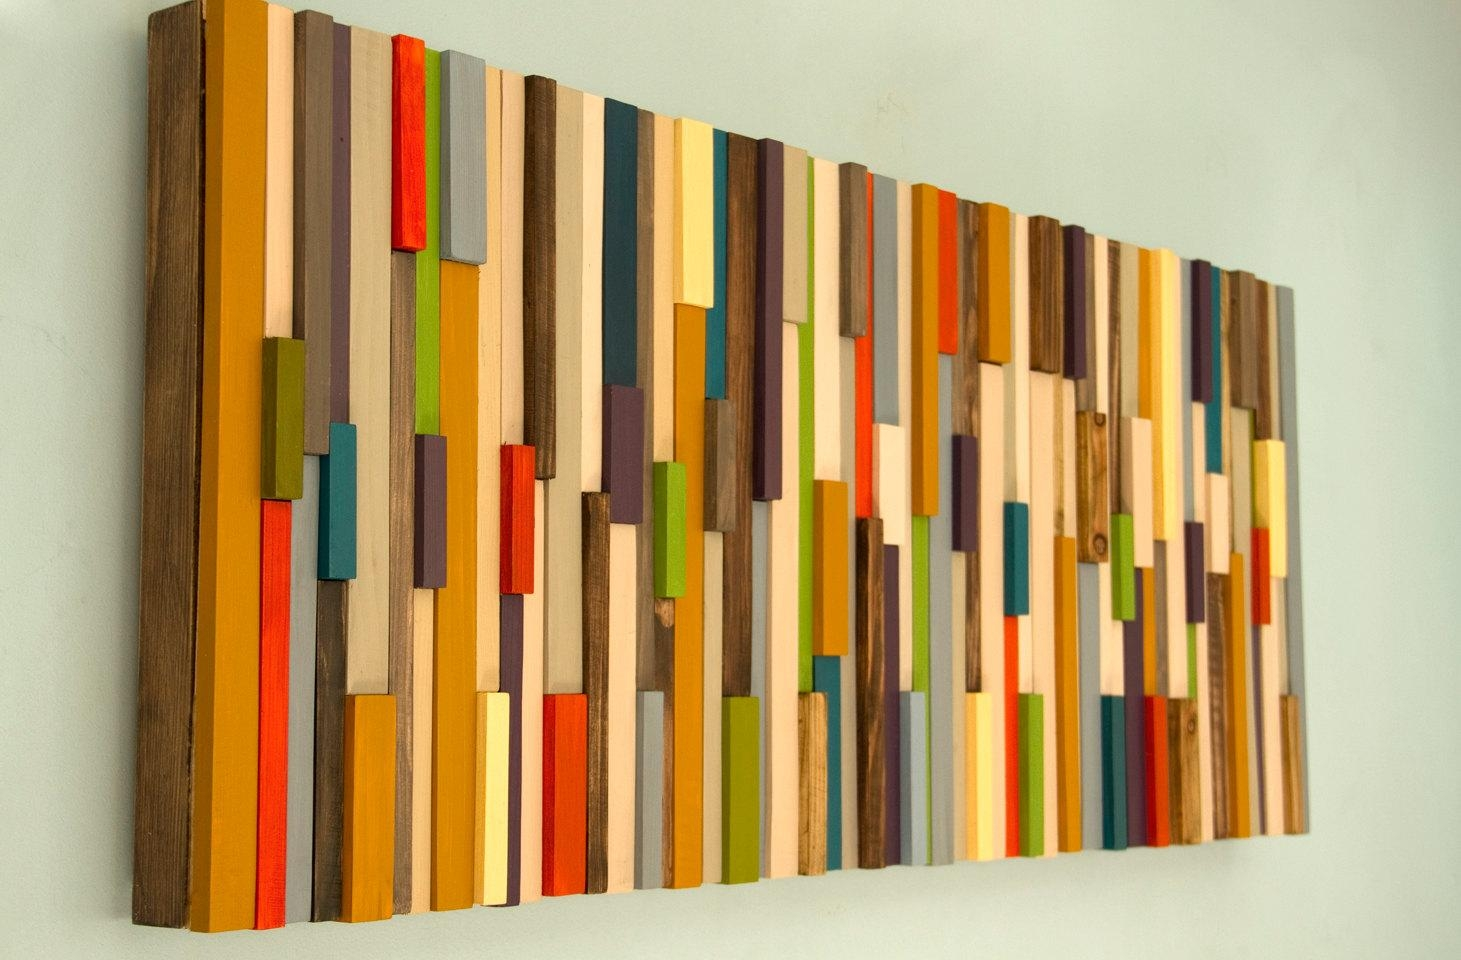 Modern Large Wall Art Reclaimed Wood Art Sculpture Painted Inside Large Yellow Wall Art (View 14 of 20)